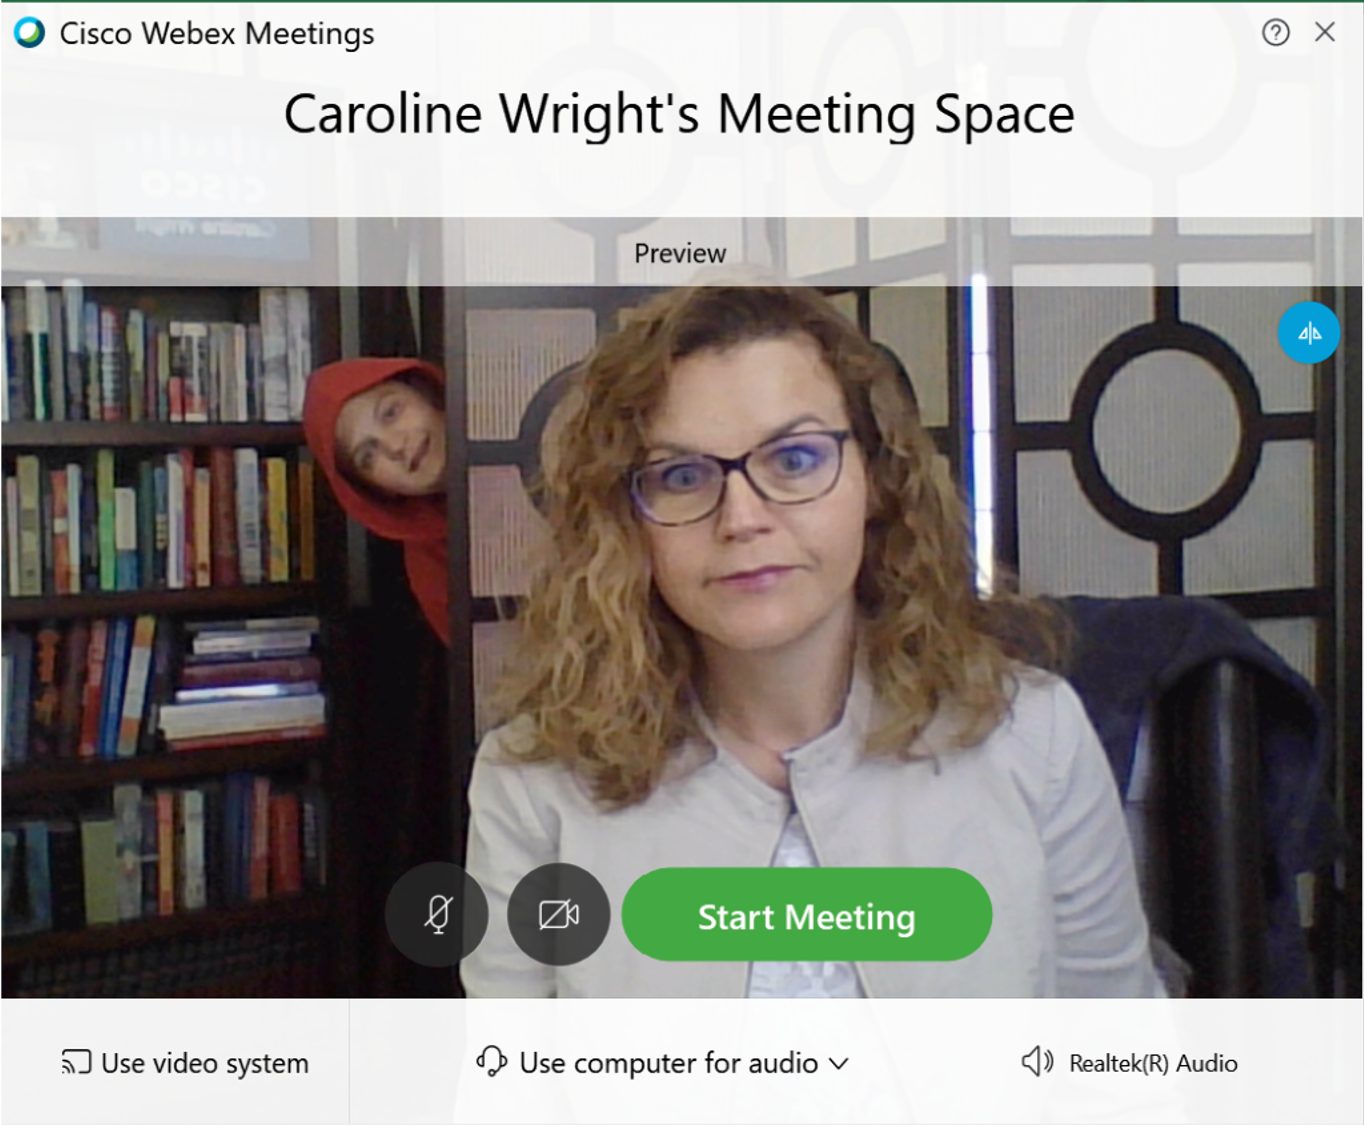 CarolineWright'ssonphotobombinghermeeting. Son peaking in from behind the door wearing red hoodie while Caroline wearing a white dress jacket and black glasses sees reflection and shows a smirk